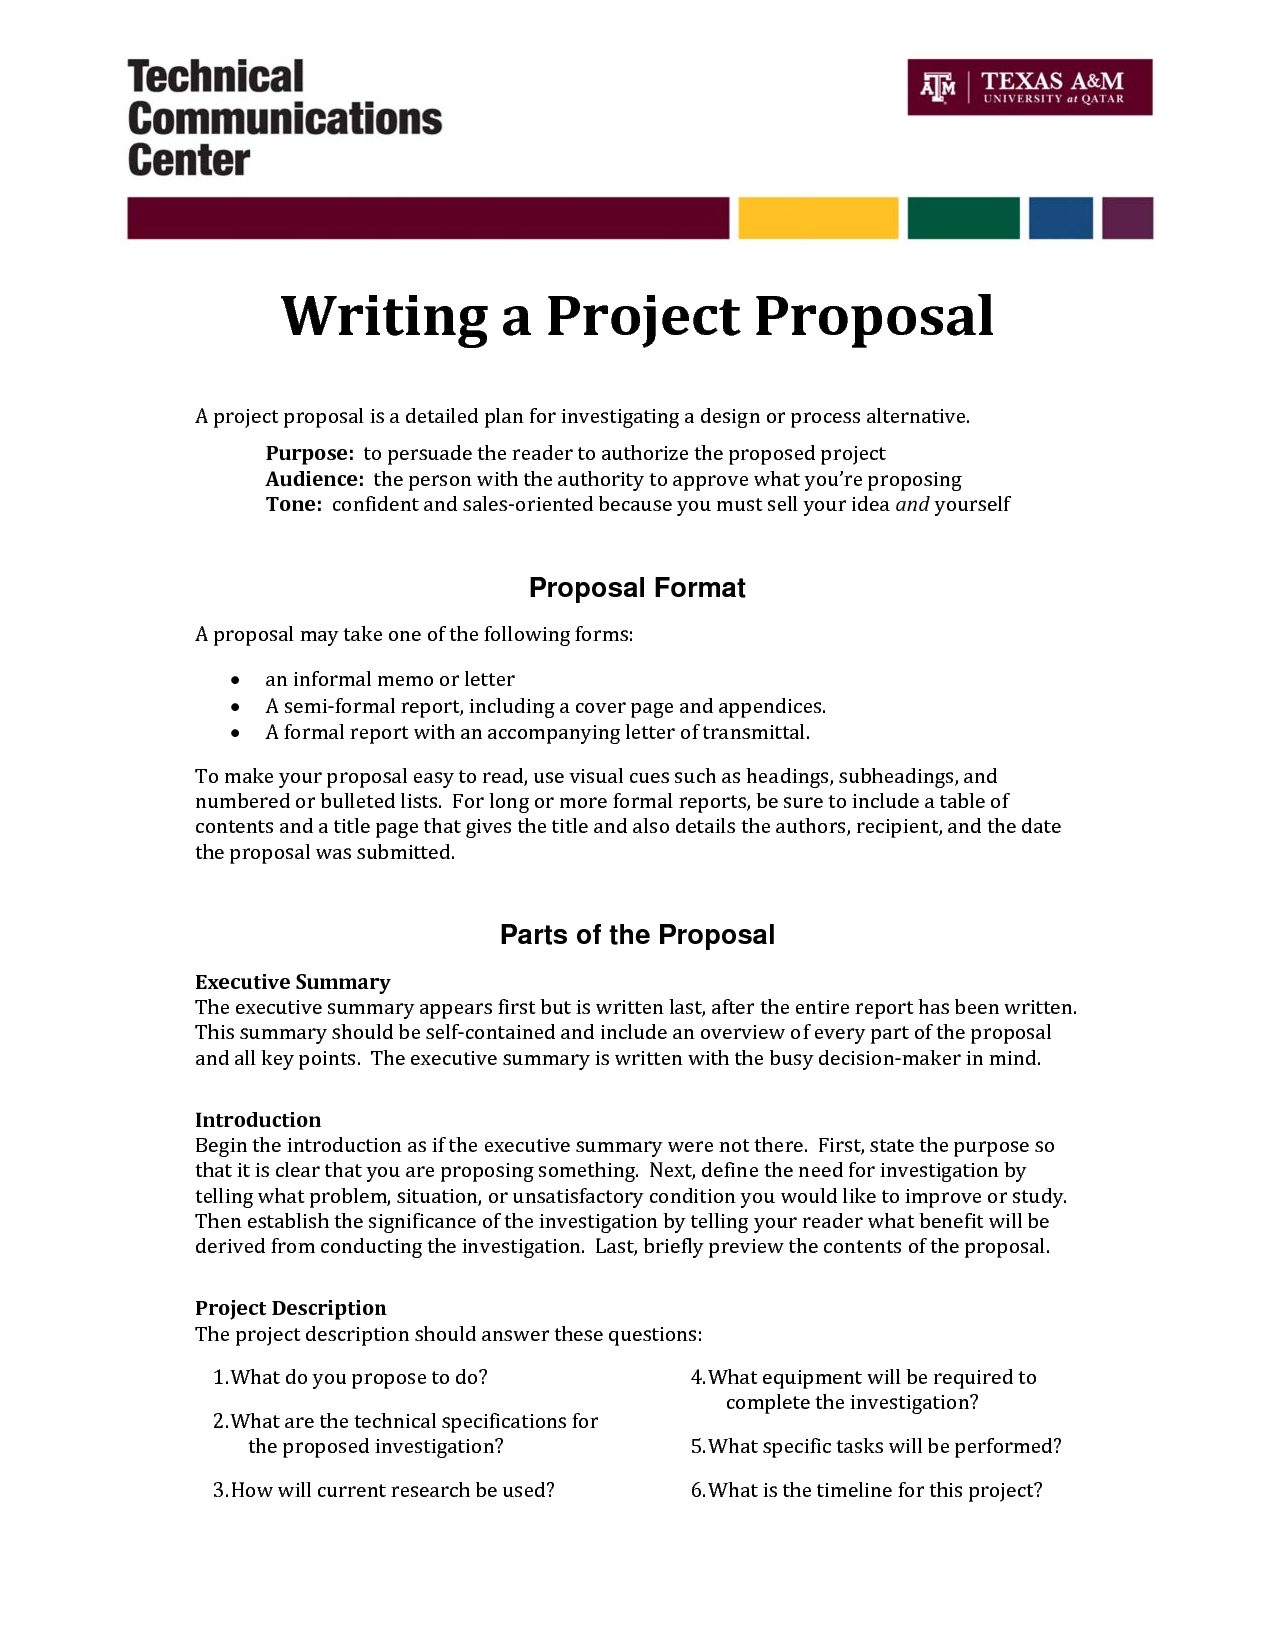 sample email cover letter for business proposal - informal proposal letter example writing a project